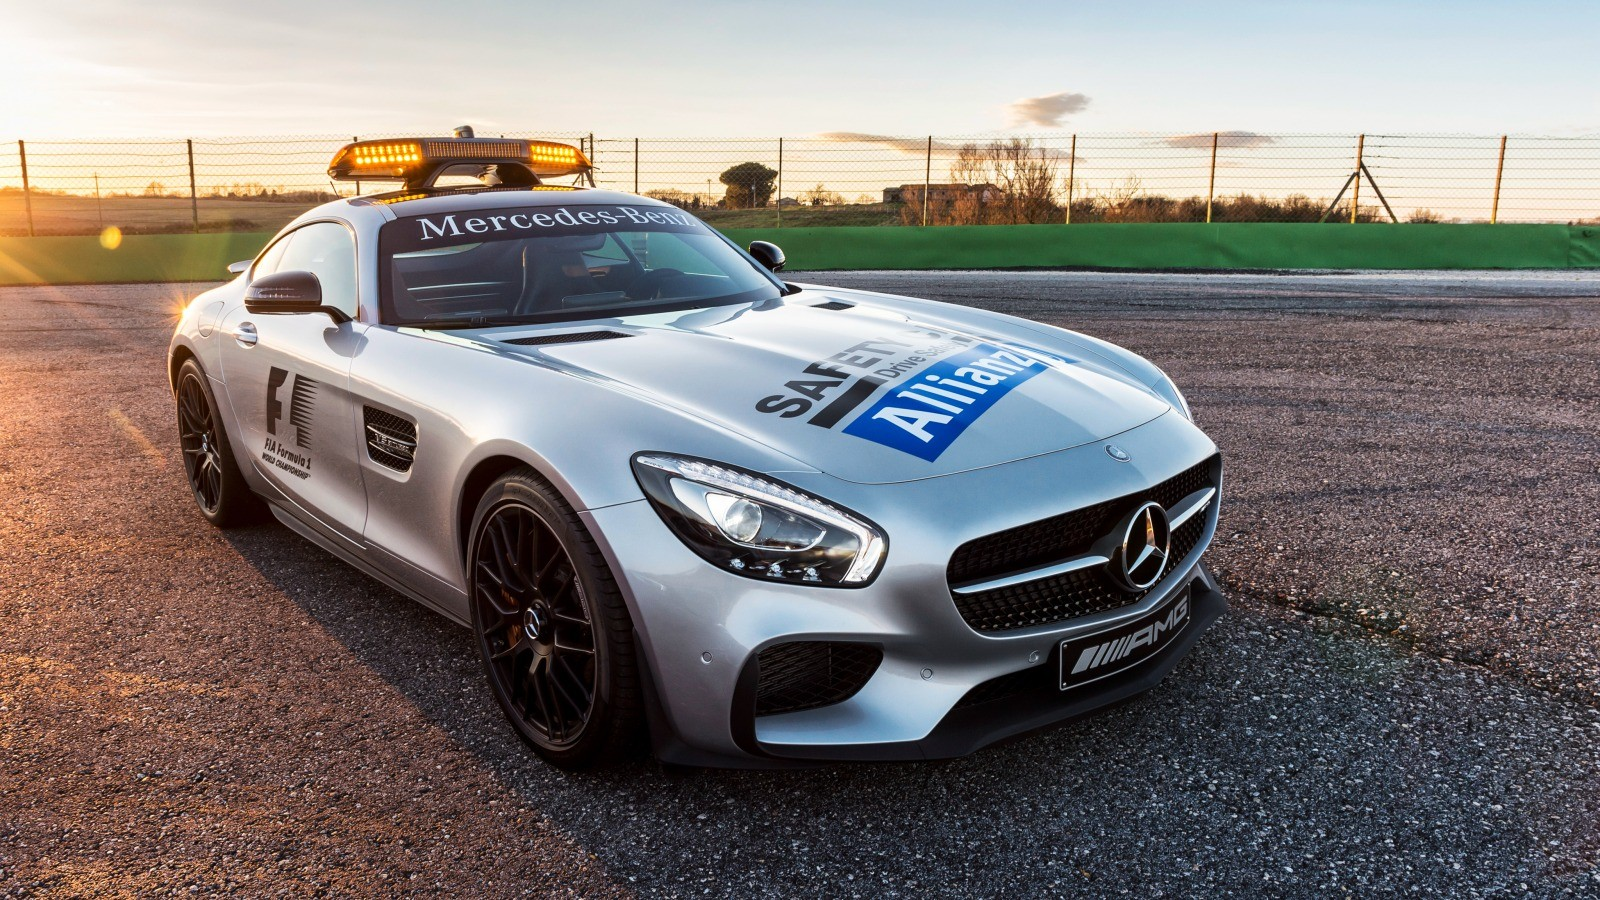 Mercedes Benz Safety Car